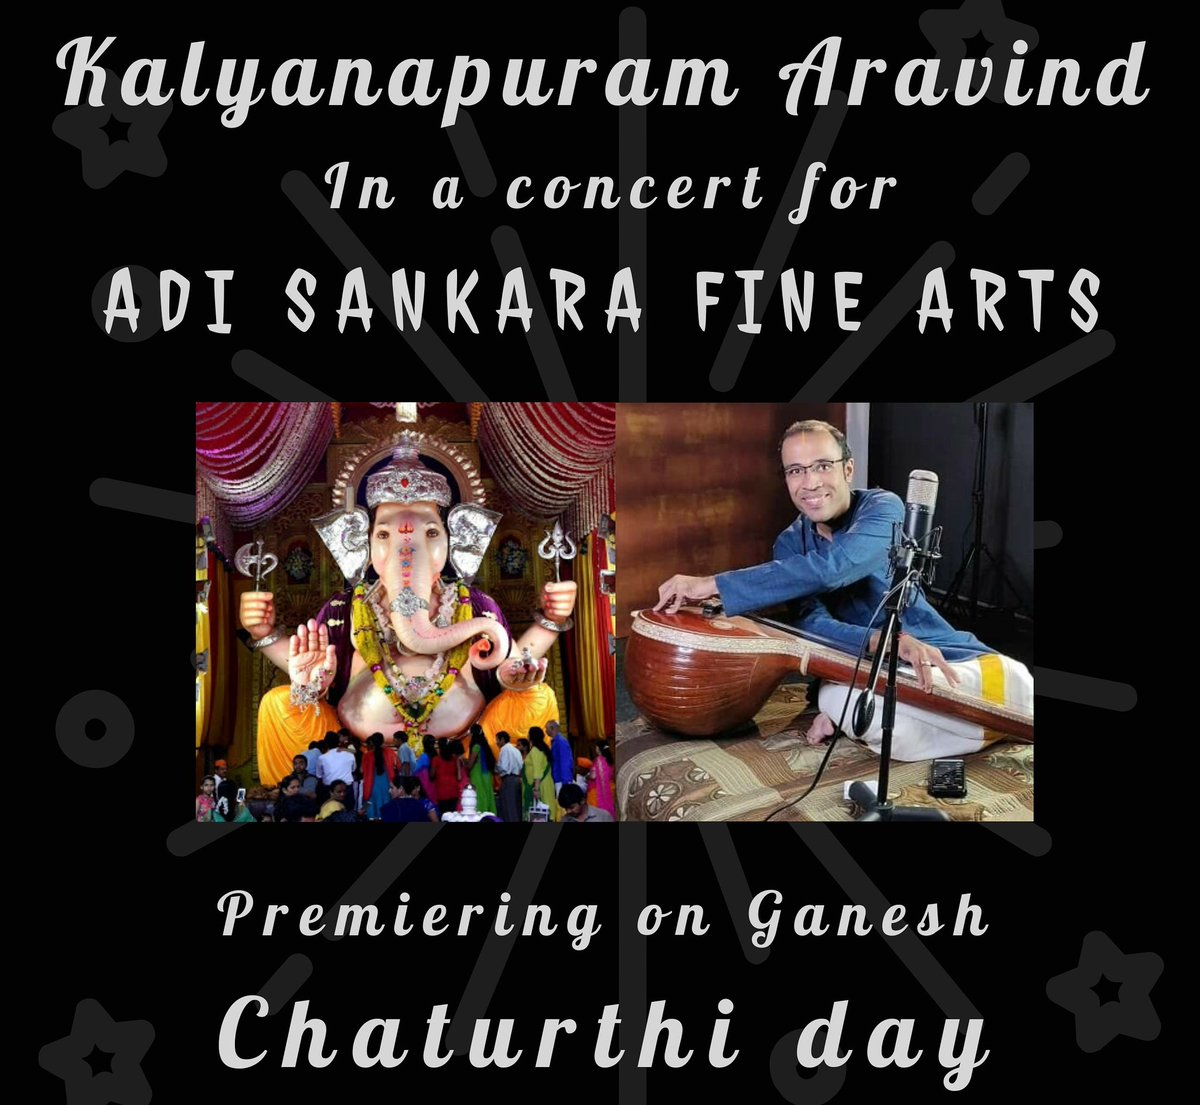 Will be performing a Ganesha Chaturthi Special Thematic Concert on the 22nd August, Ganesha Chaturthi Day for Adi Sankara Fine Arts, California, USA. Concert will be premiered on my Facebook page - https://t.co/9V9NbffOOt https://t.co/EoQYhahKZU